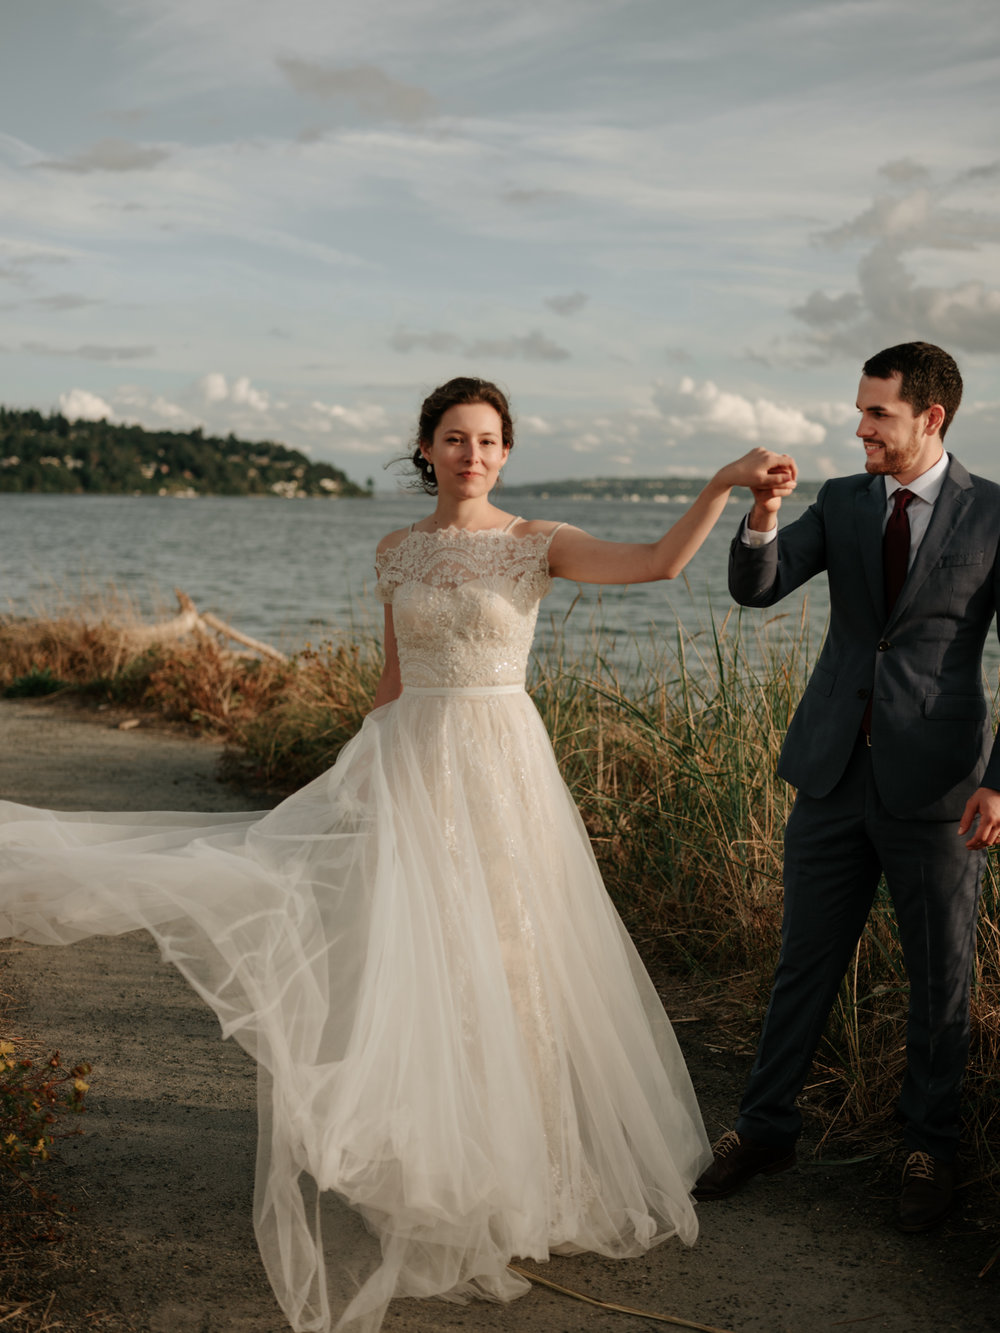 Stolen Glimpses Seattle Wedding Photographer at Discovery Park72.jpg